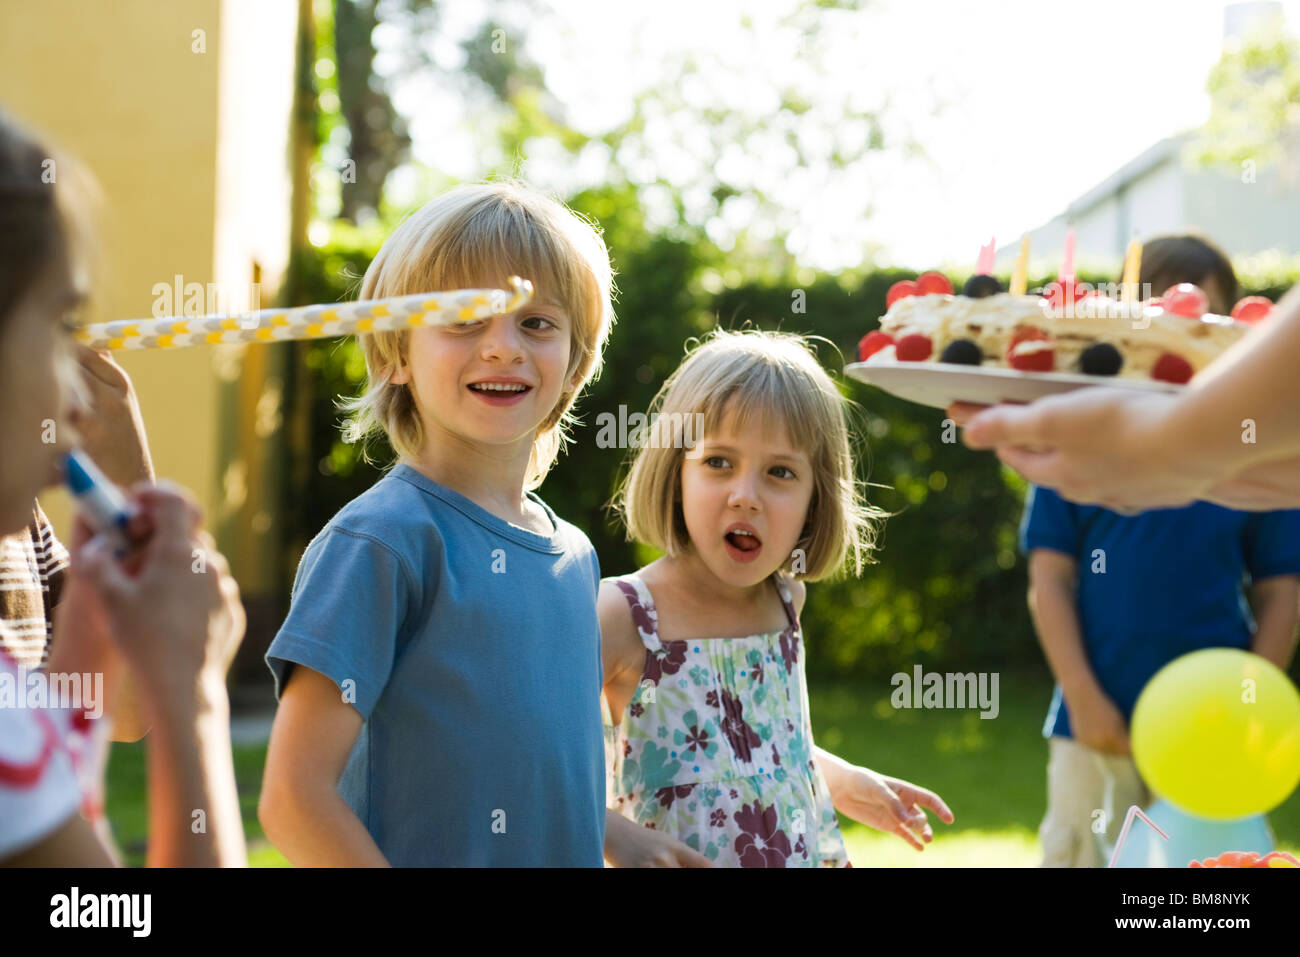 Children at birthday party - Stock Image